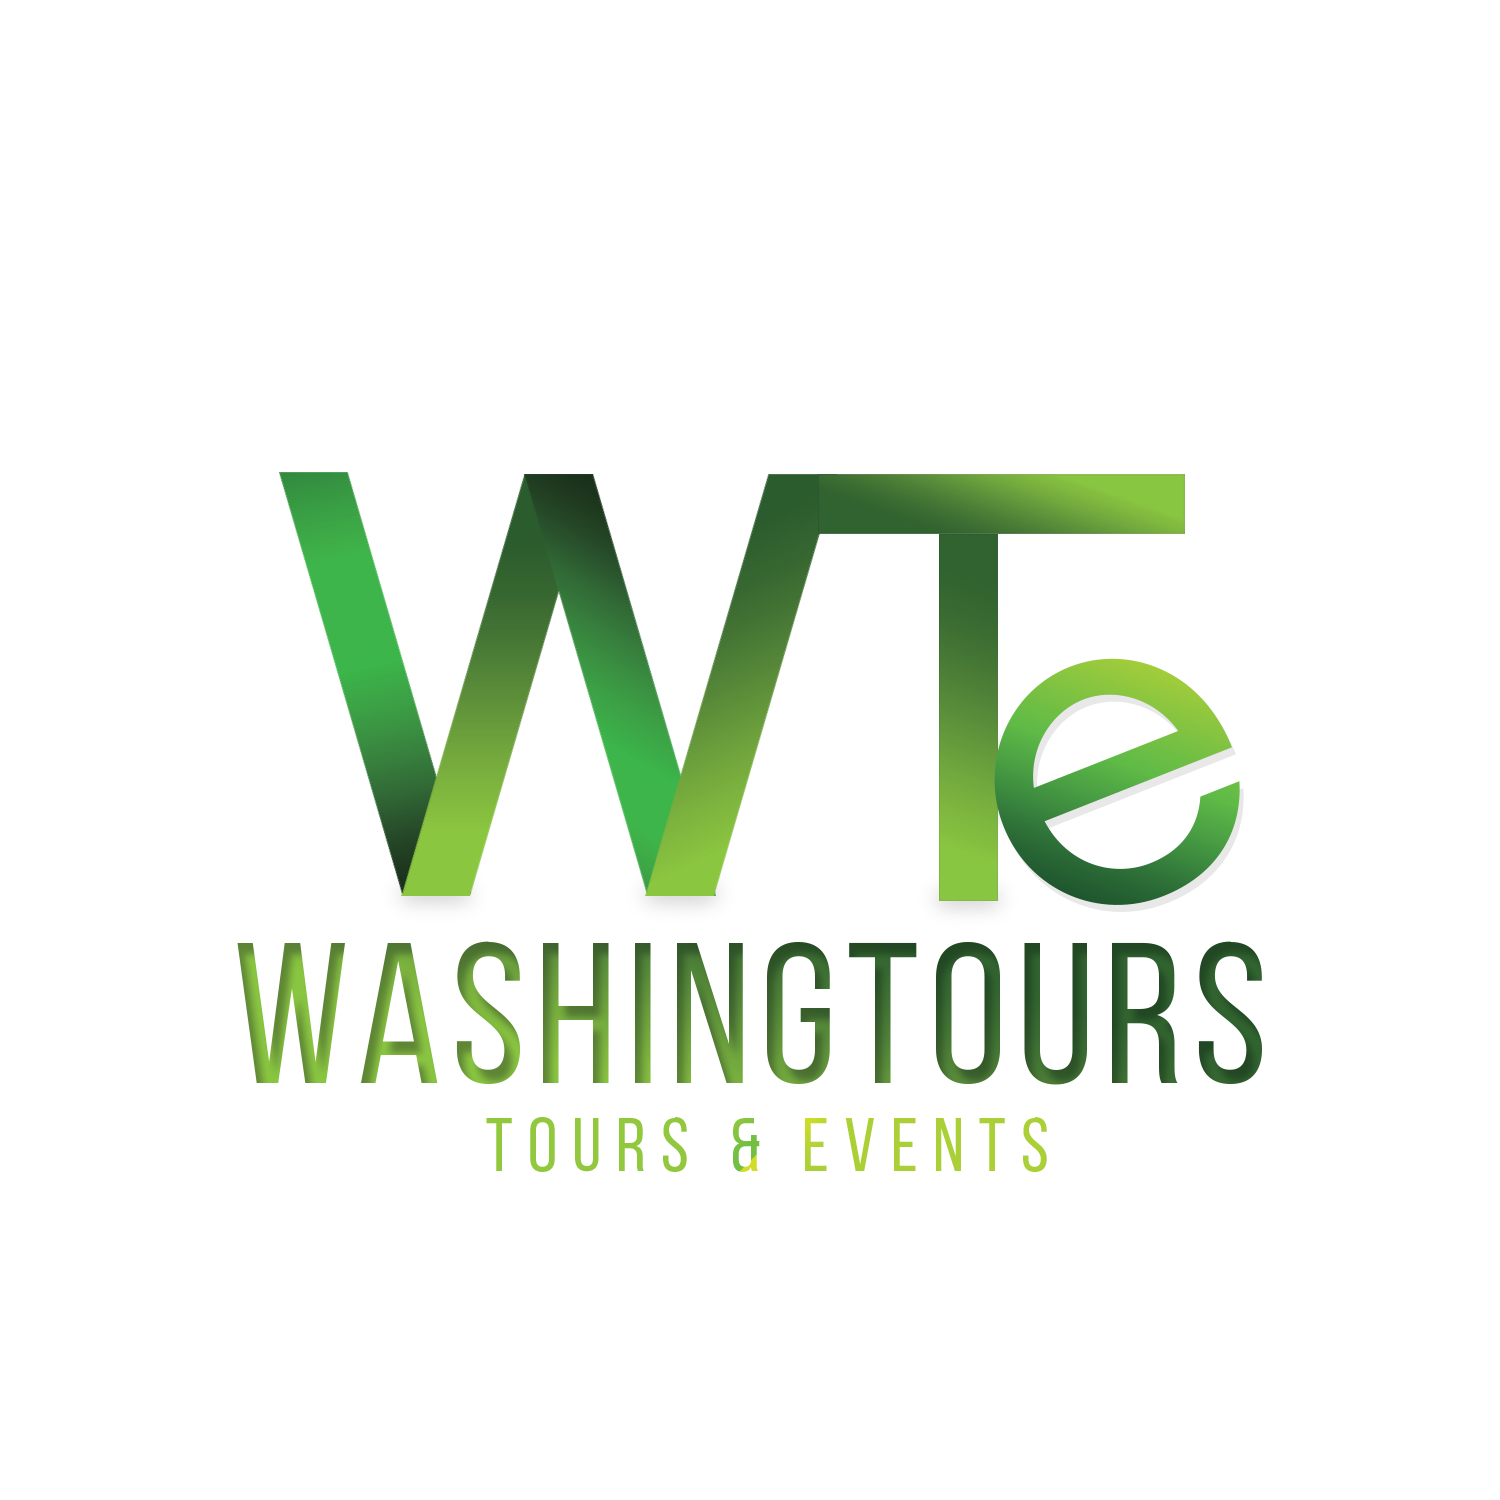 WashingTours & Events